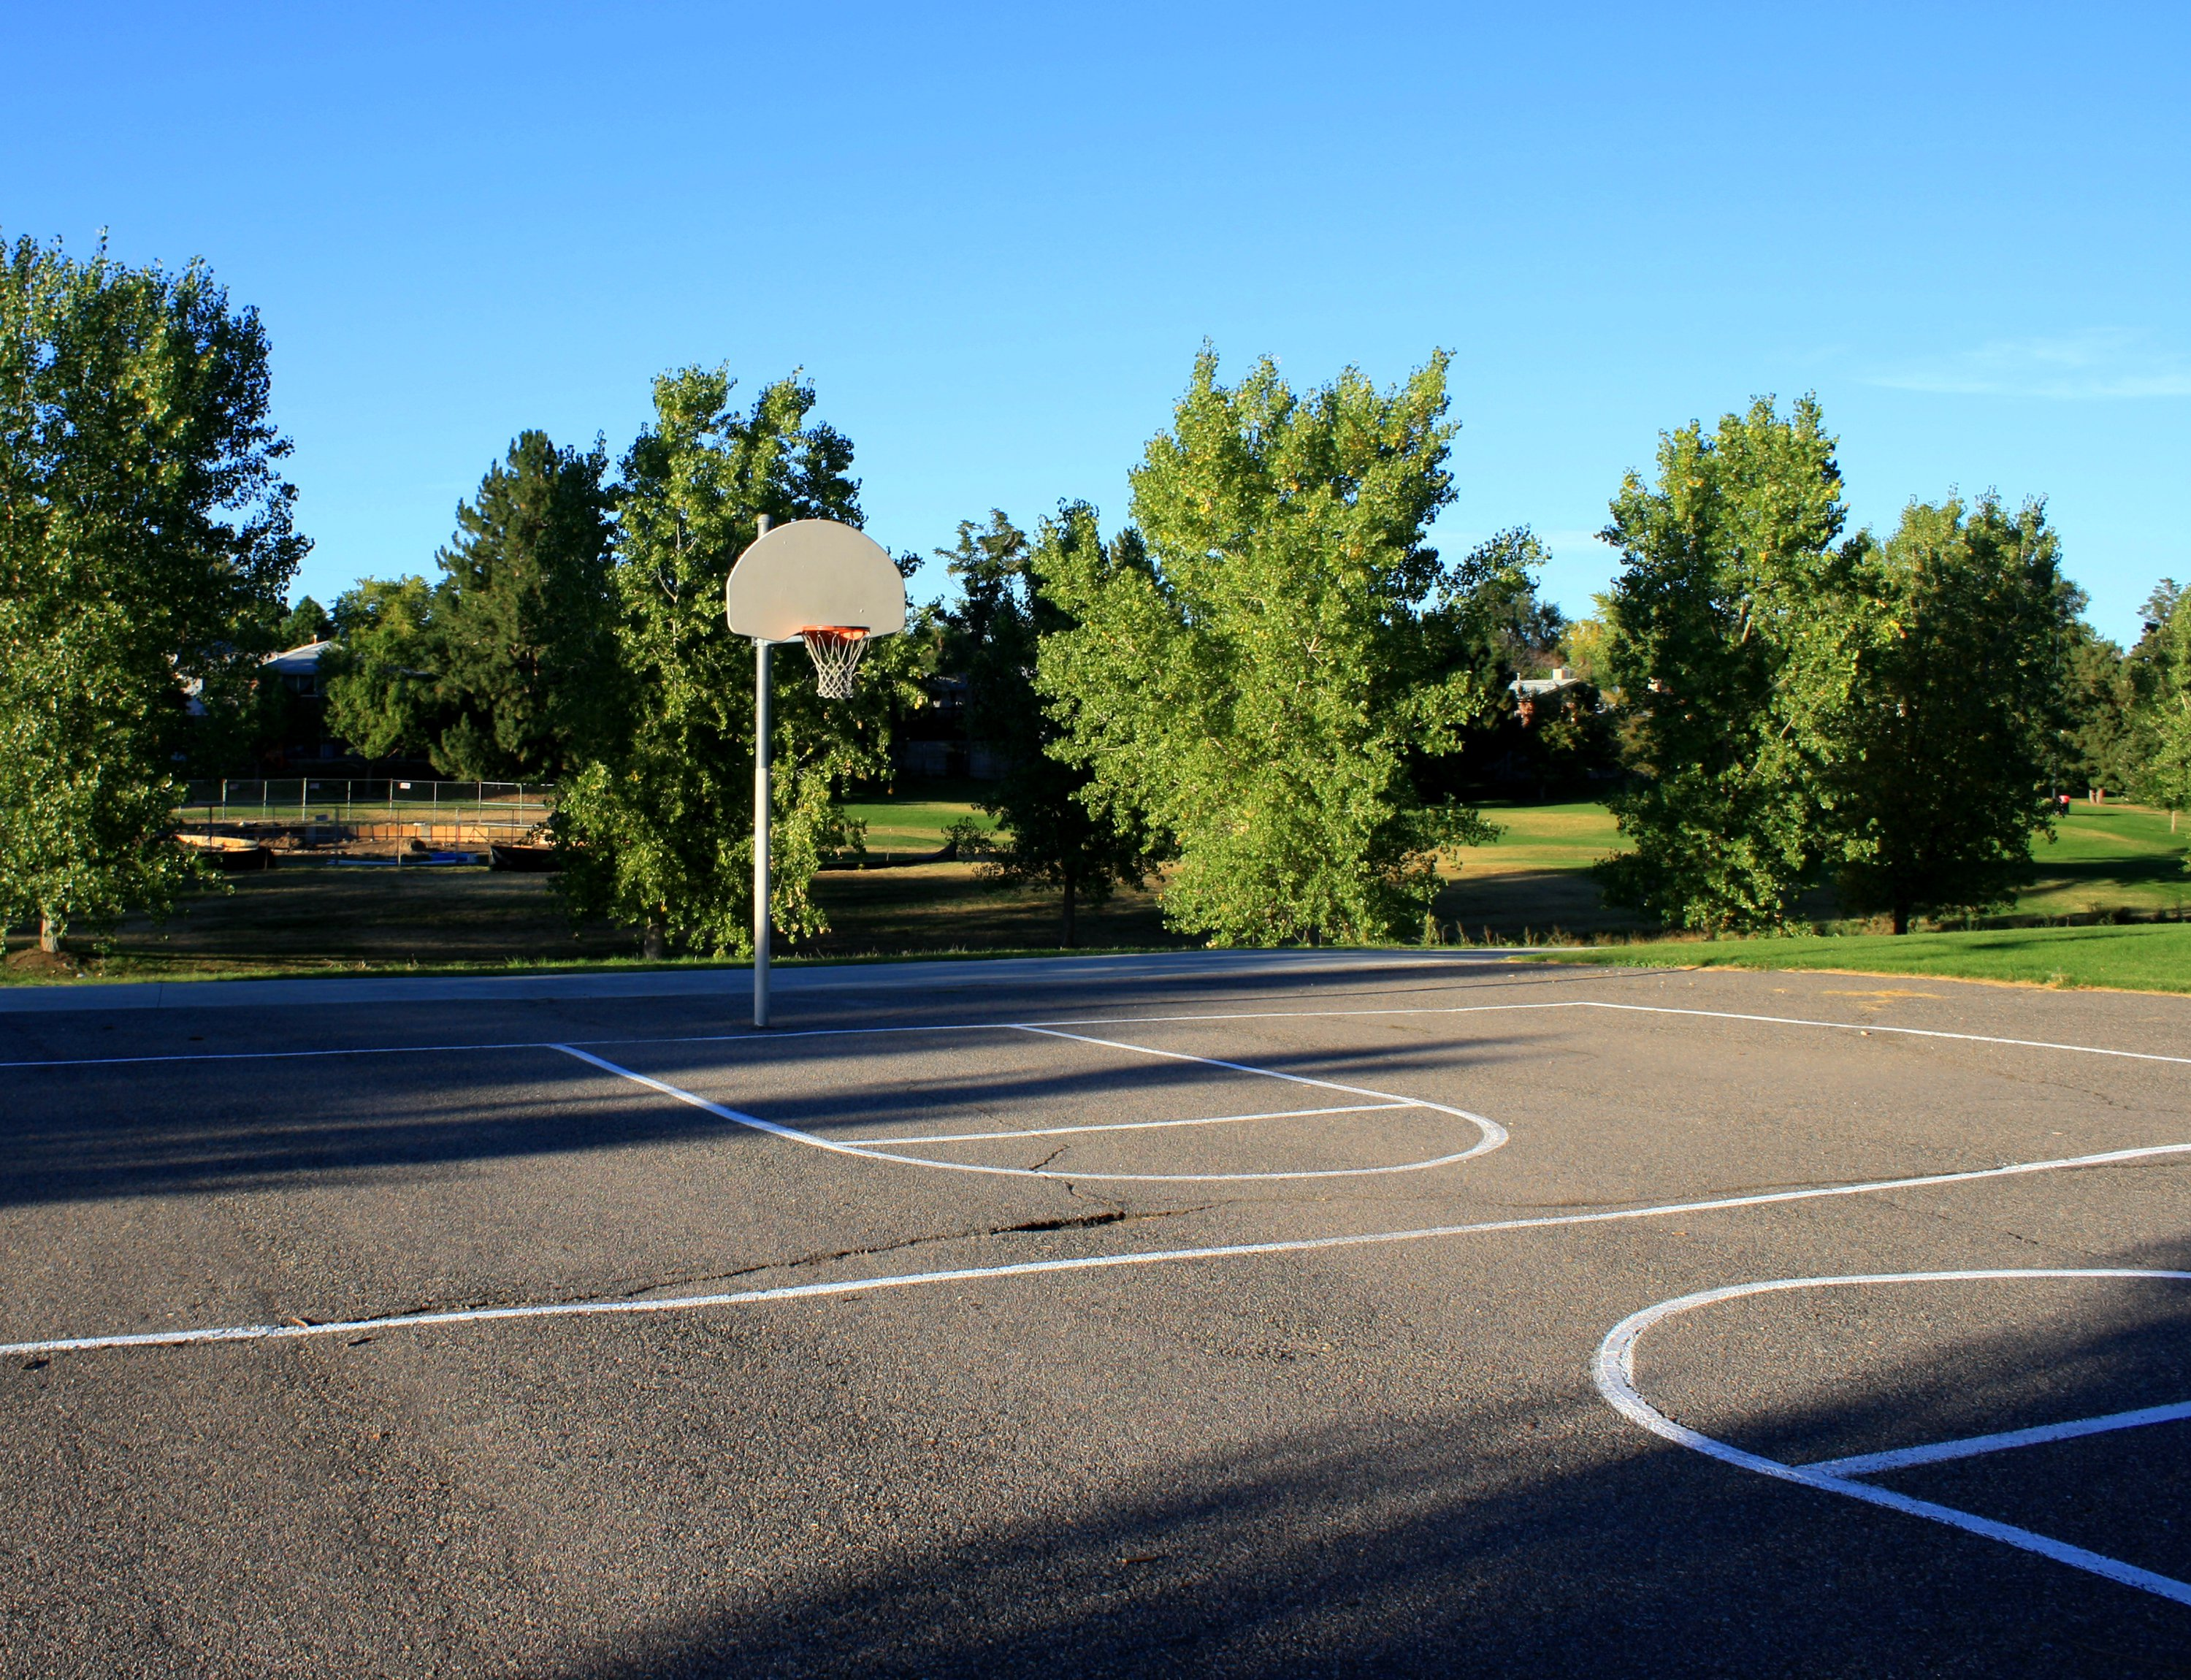 Empty outdoor basketball court images Backyard basketball courts